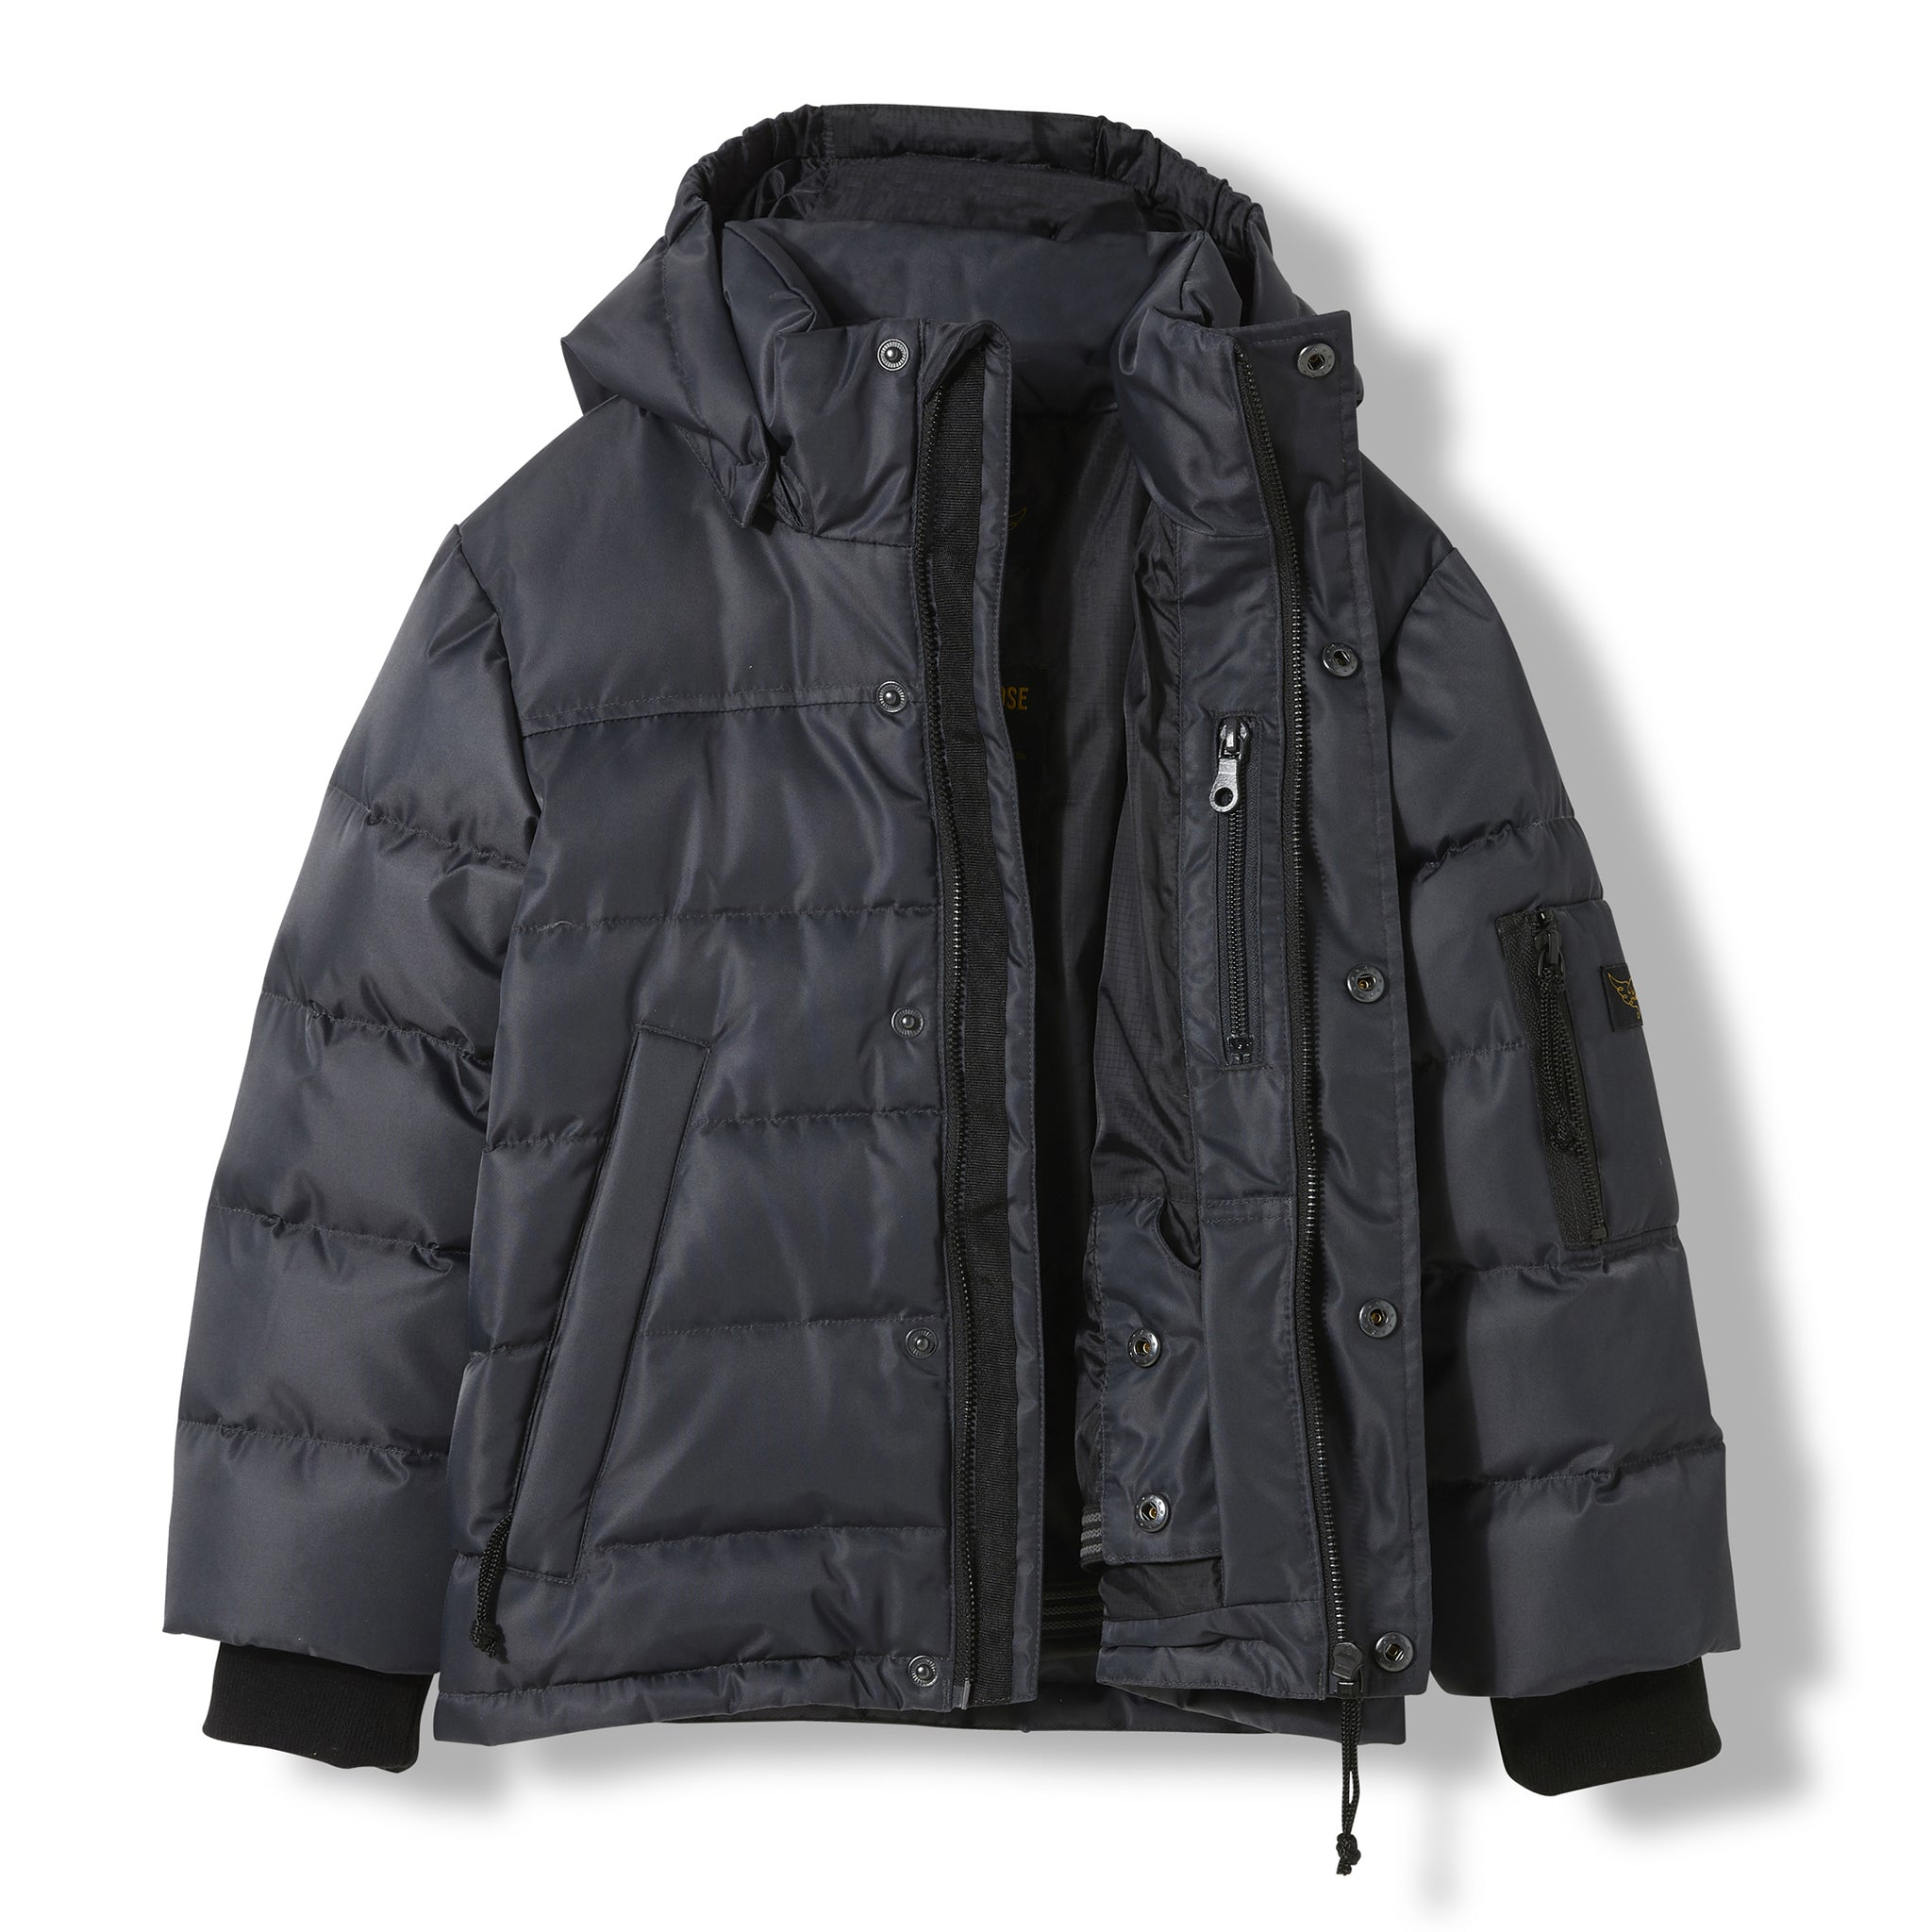 SNOWLYNX Ash Black -  Woven Down Jacket 2